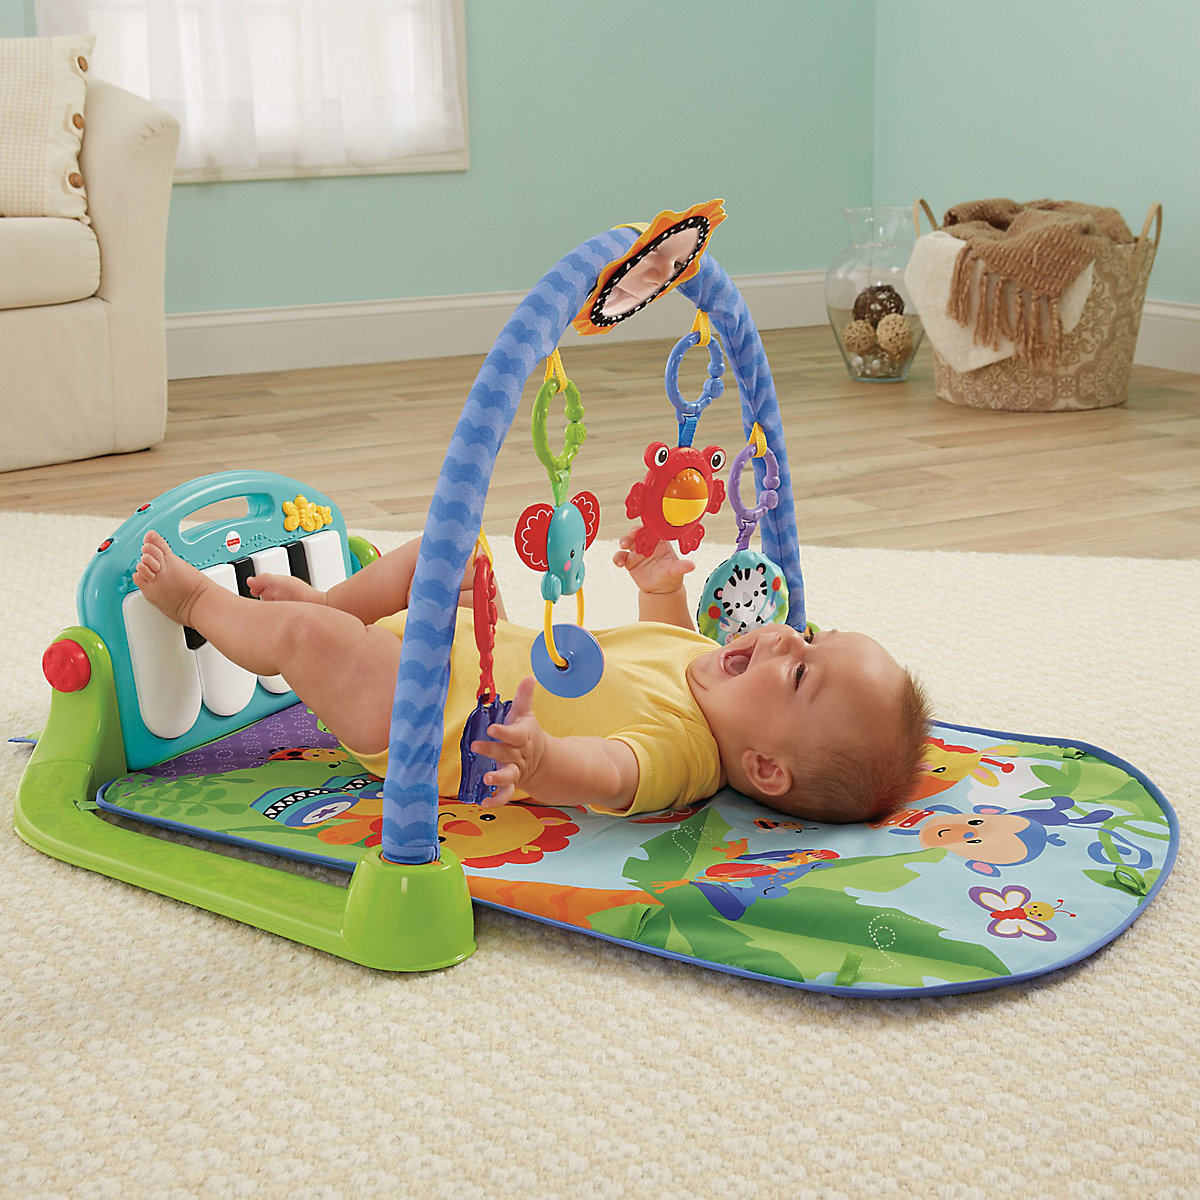 Play Mats FISHER-PRICE 3399157 Play Carpet Mat Developmental Children Educational Busy Toys for boys girls